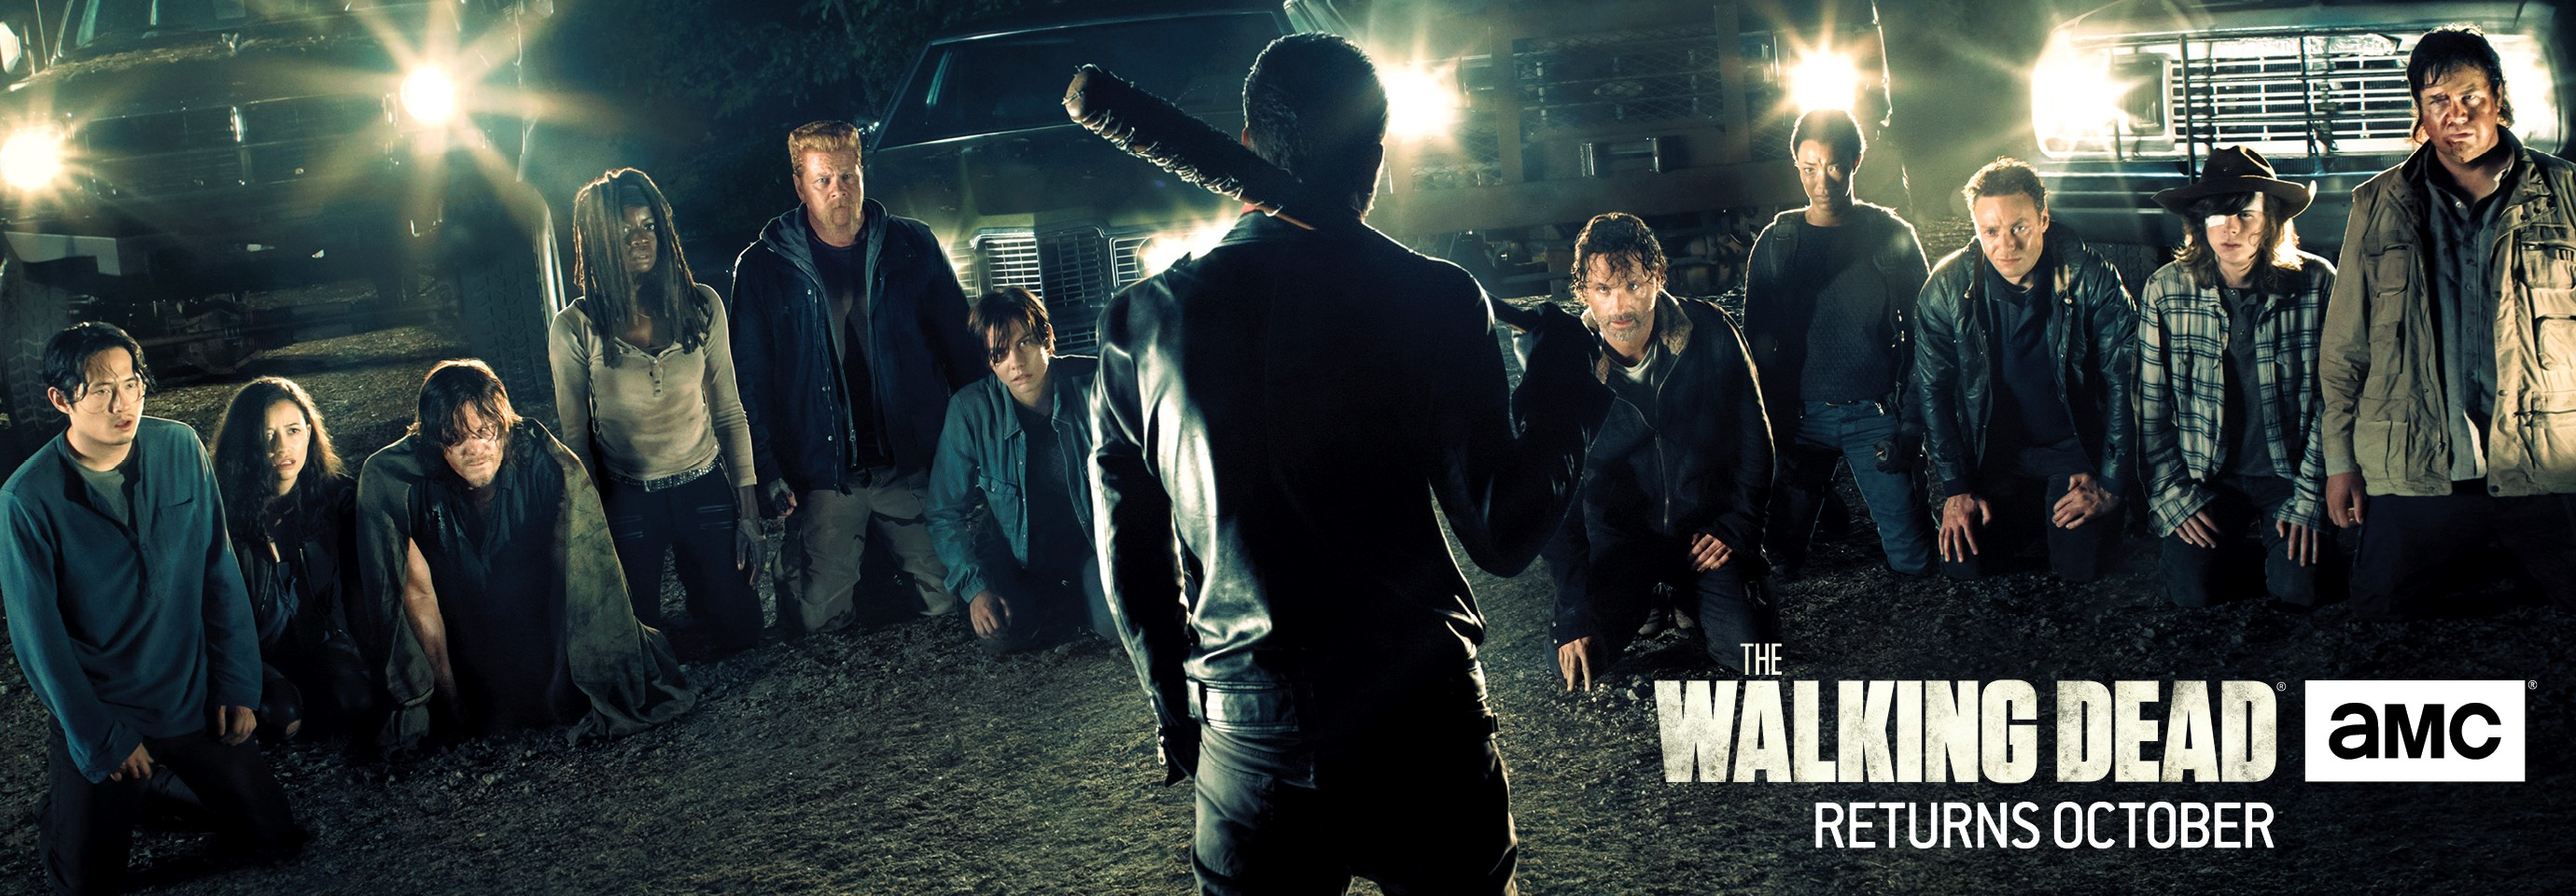 The_Walking_Dead_saison_7_key_image